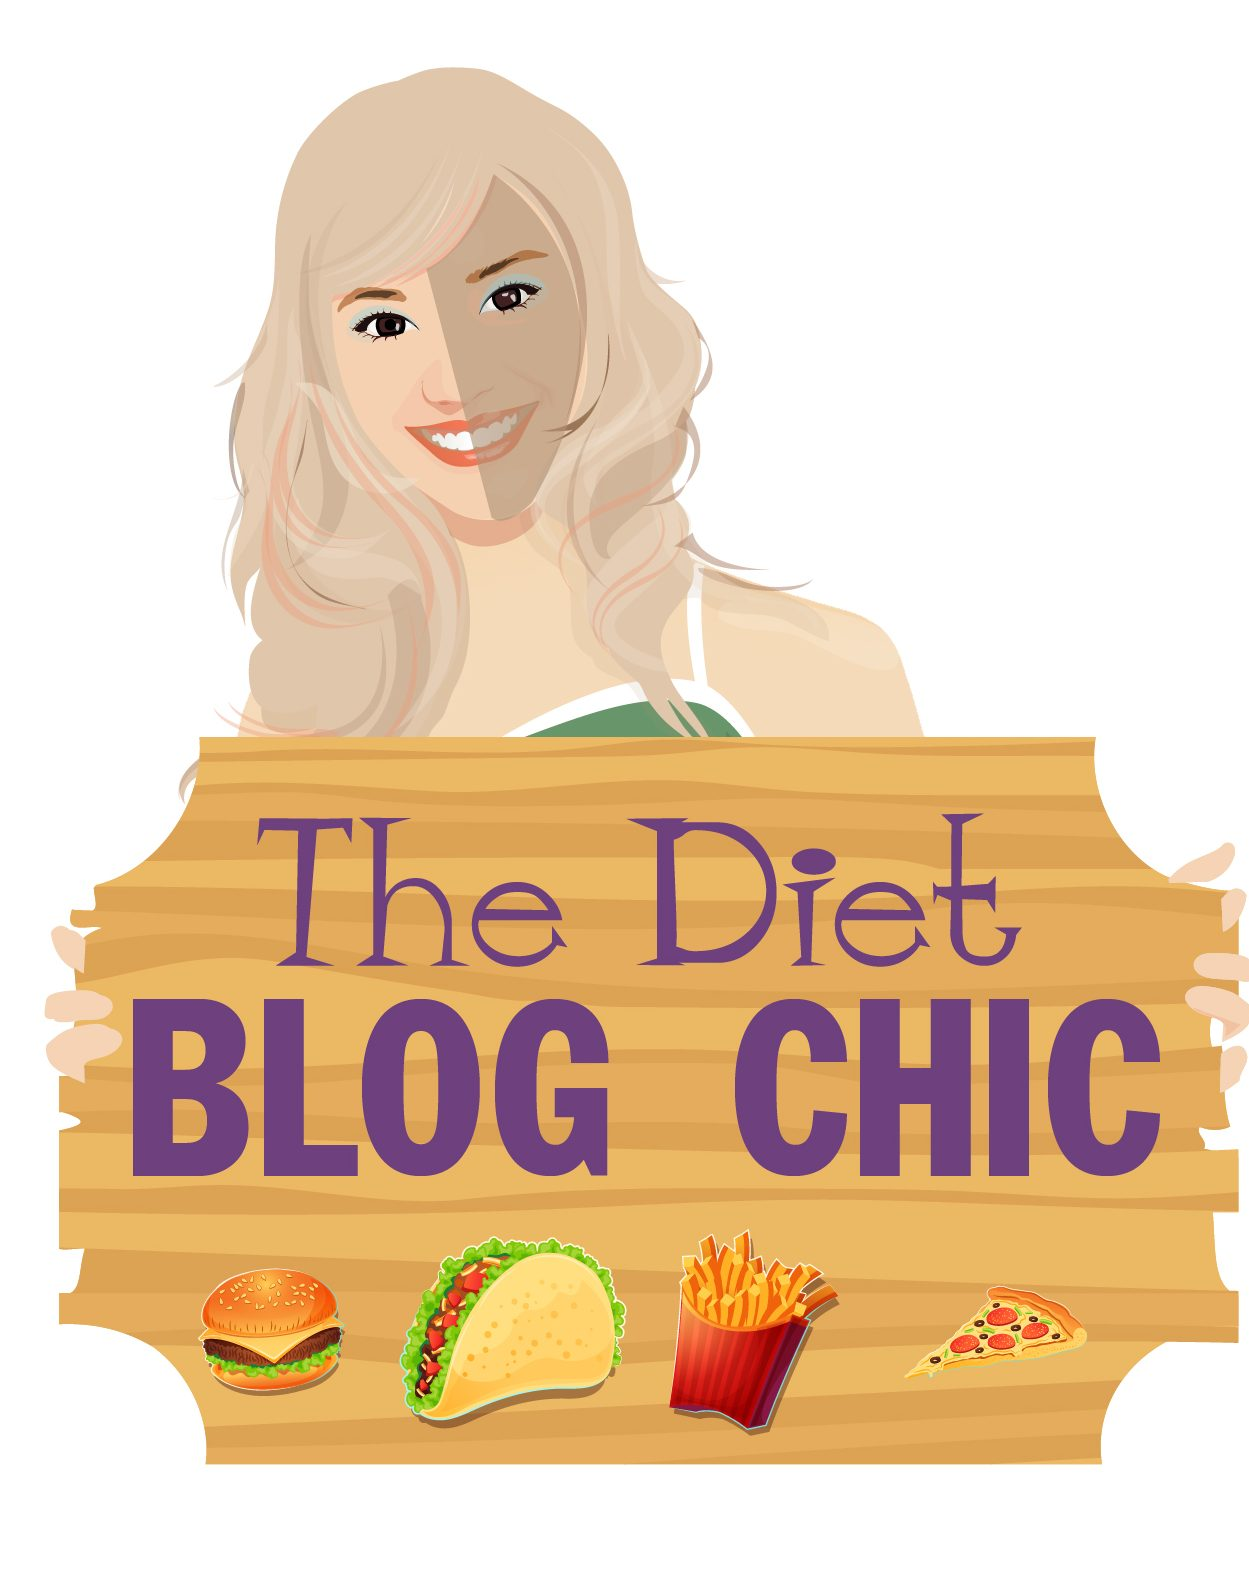 The Diet Blog Chic